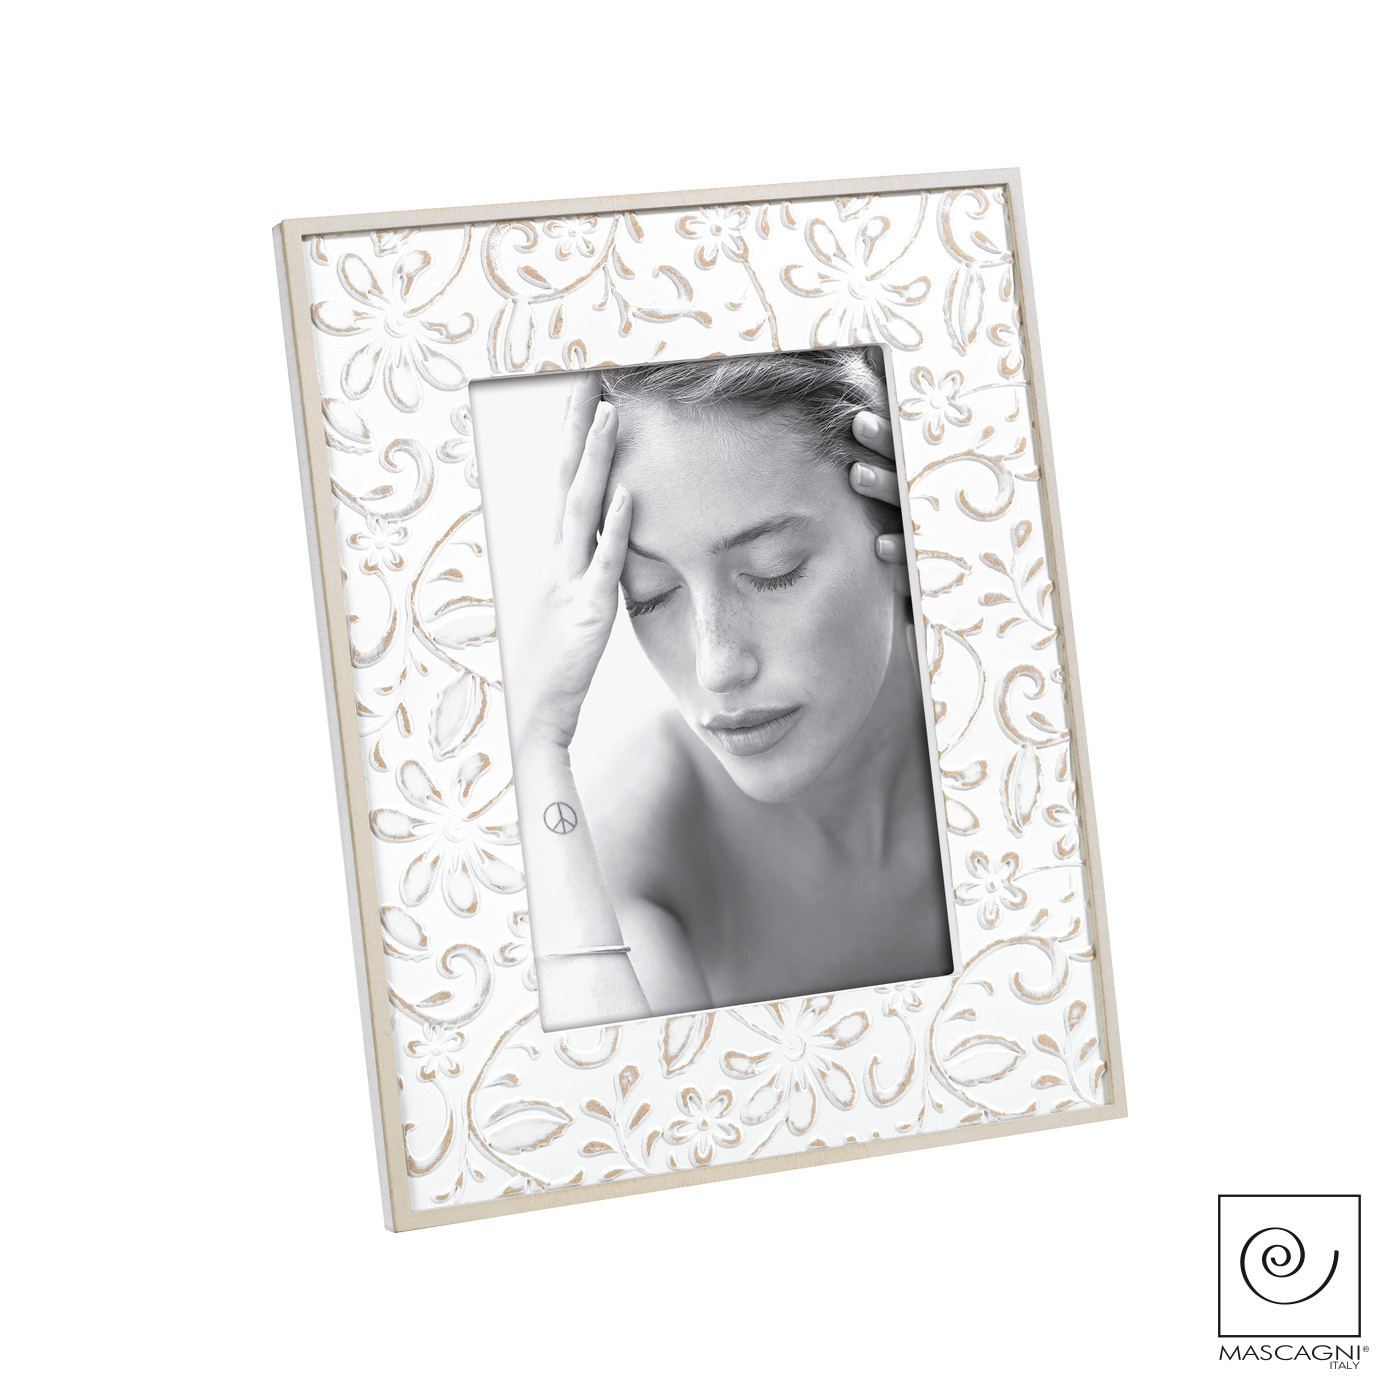 Art Mascagni JASMINE PHOTO FRAME 13X18